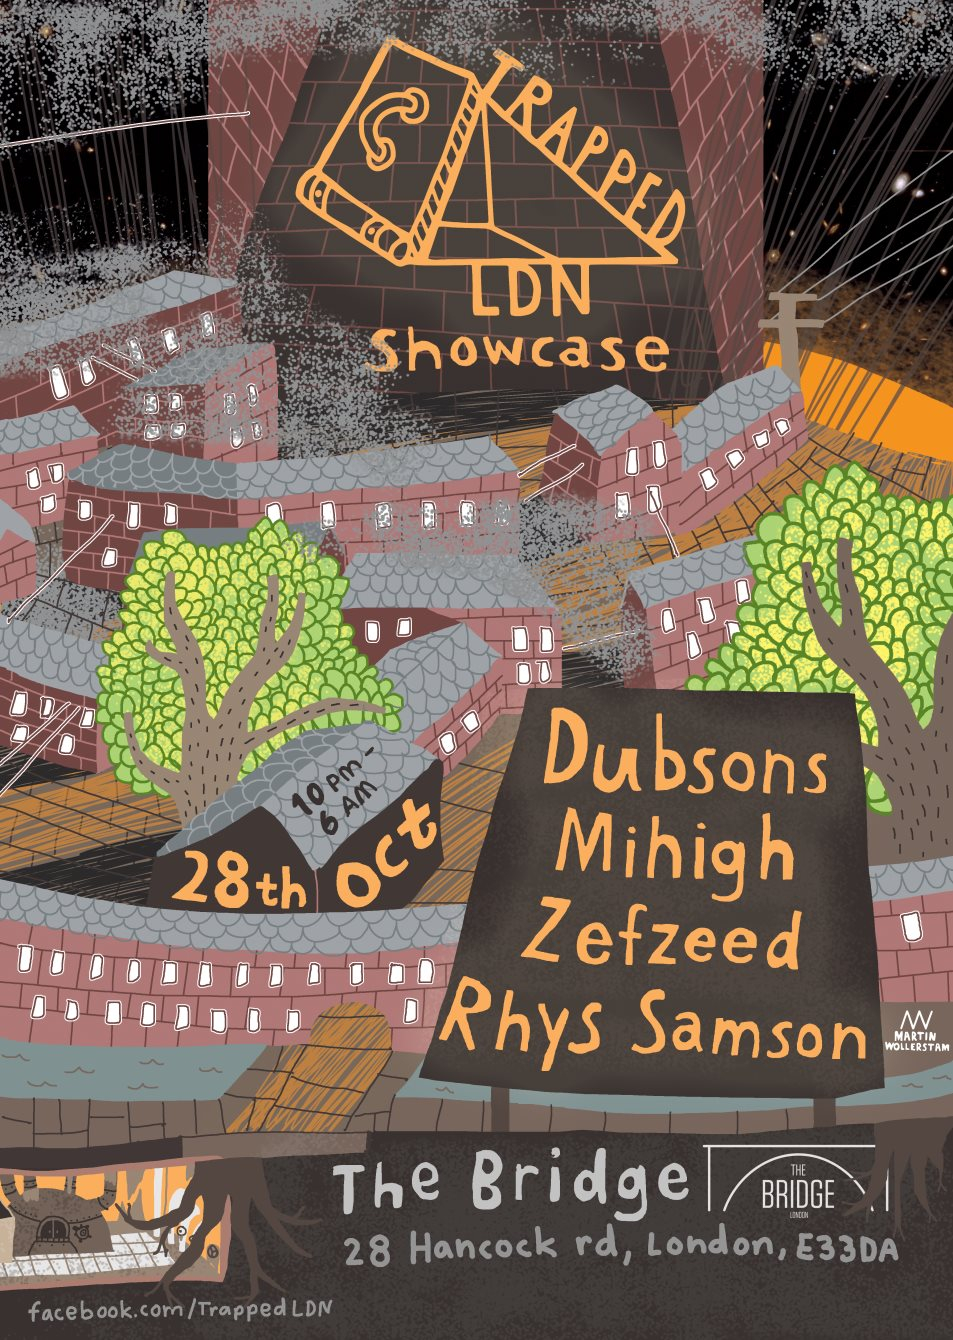 Trapped Ldn Showcase W/ Dubsons, Mihigh, Zefzeed, Rhys Samson - Flyer front